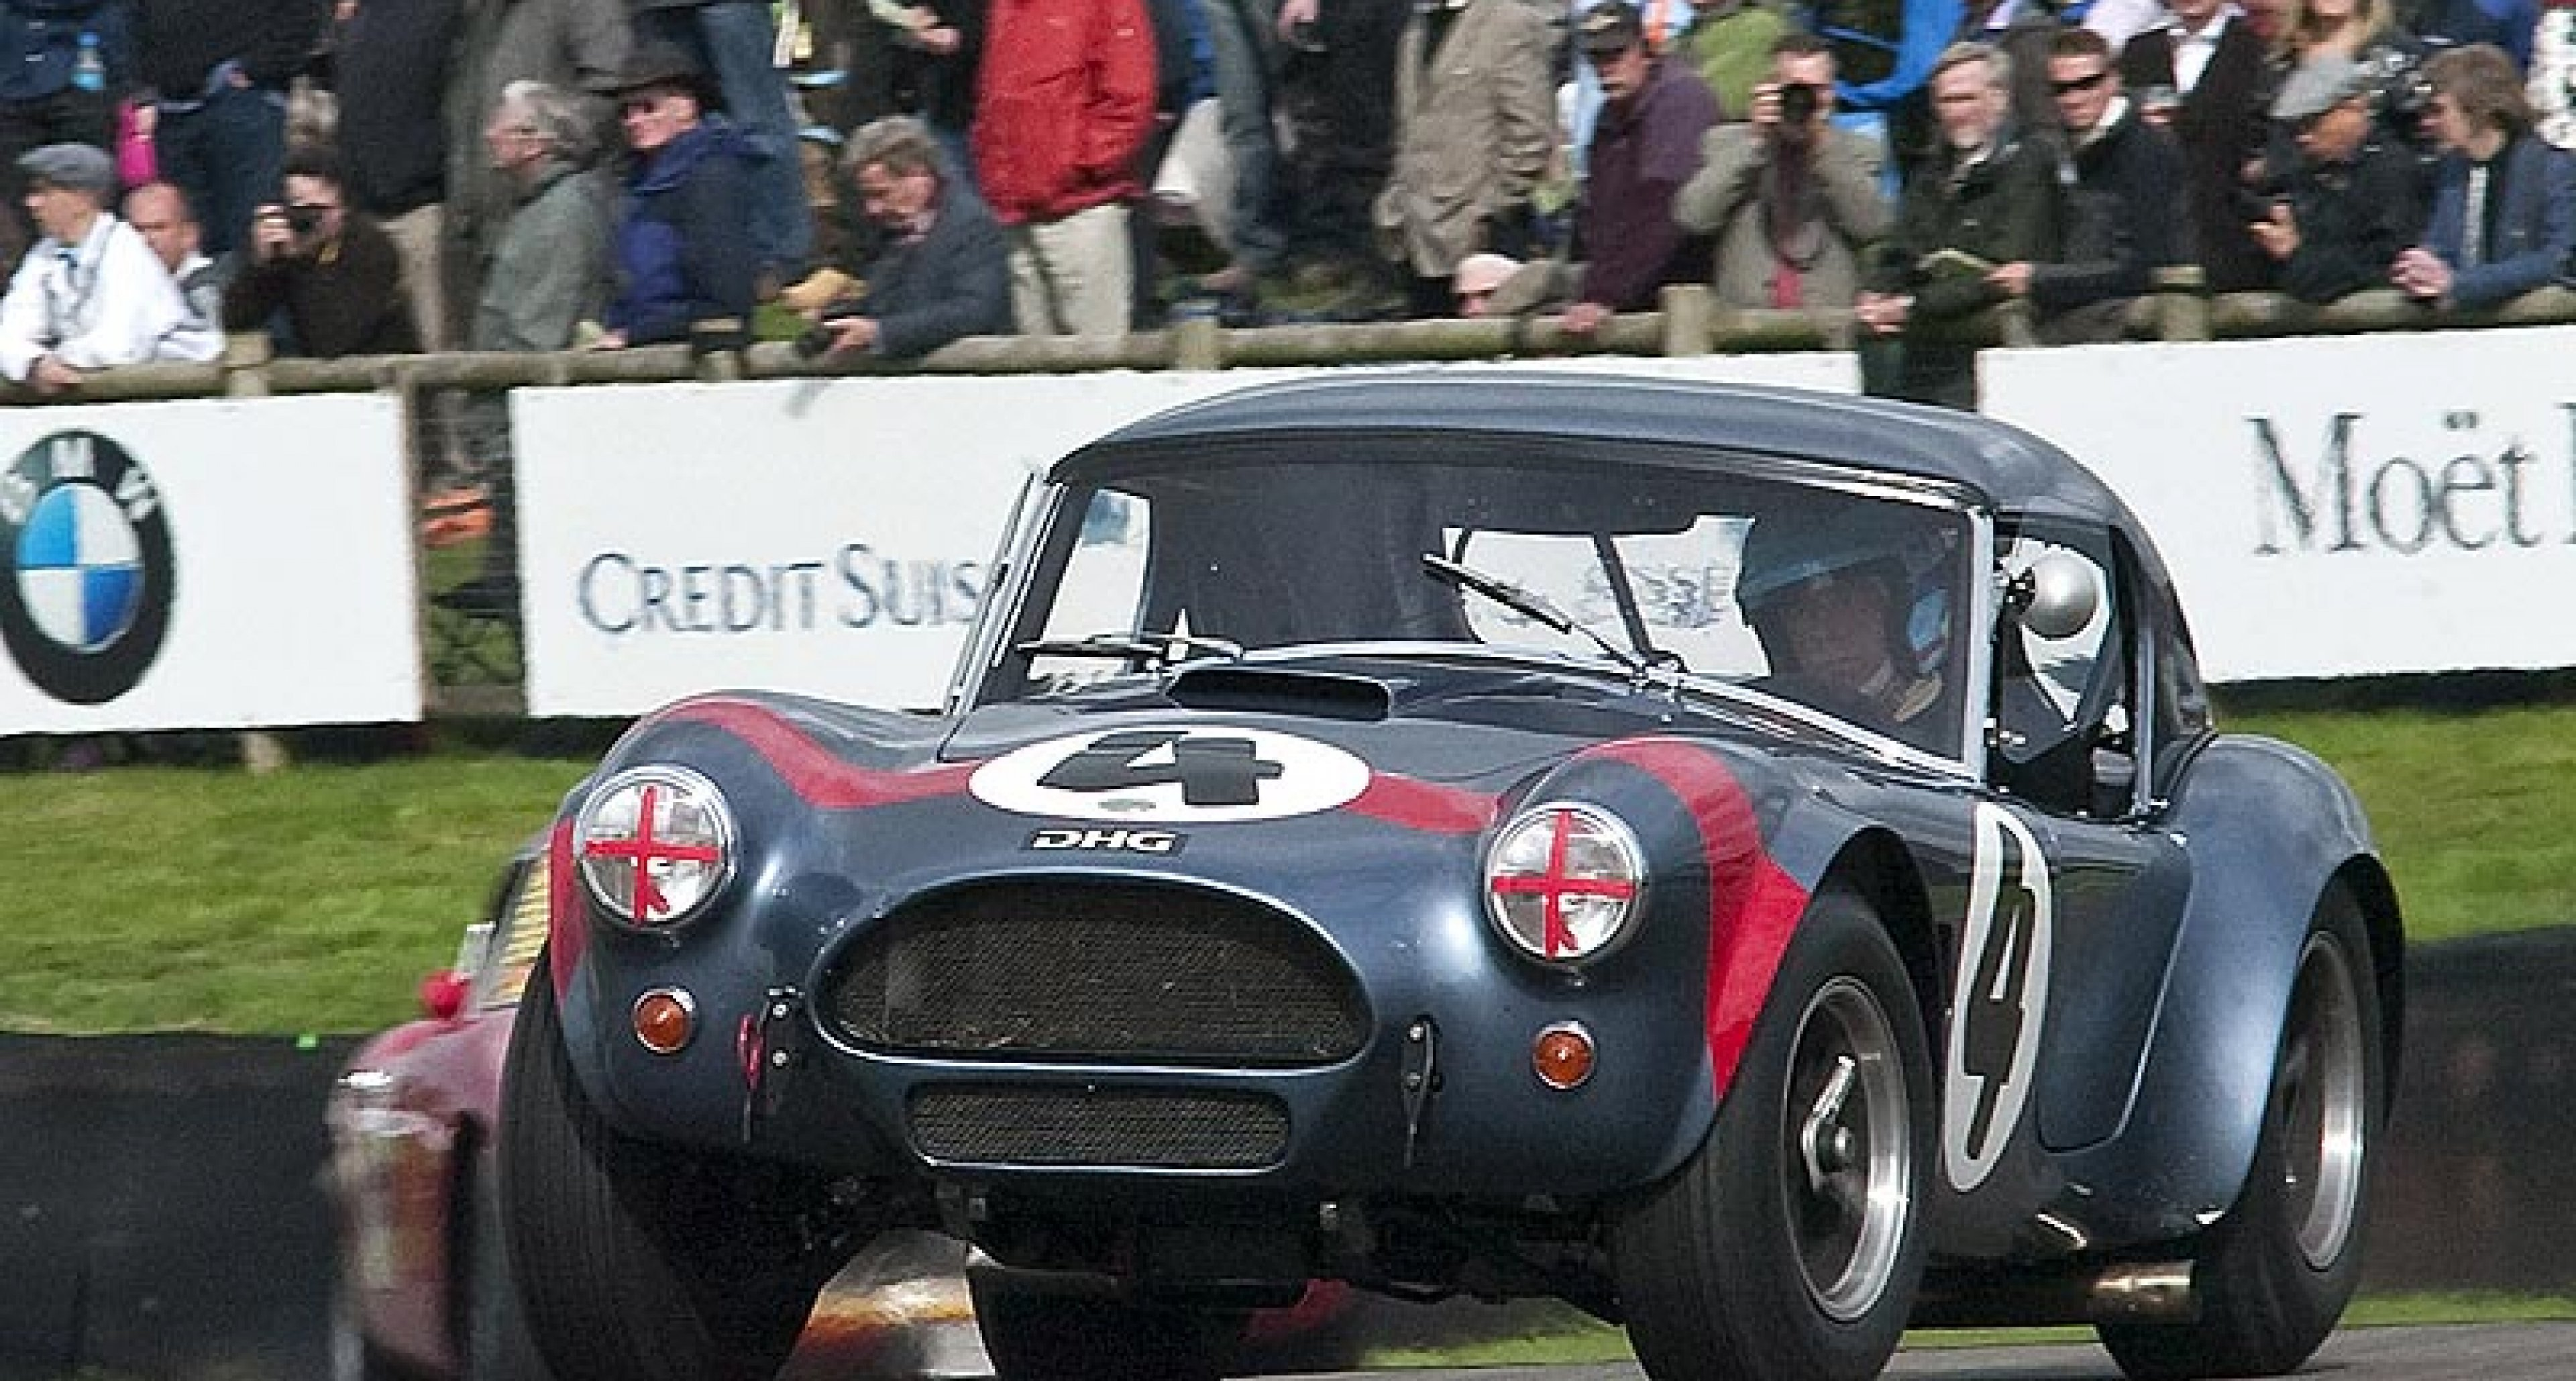 The 2010 Goodwood Revival